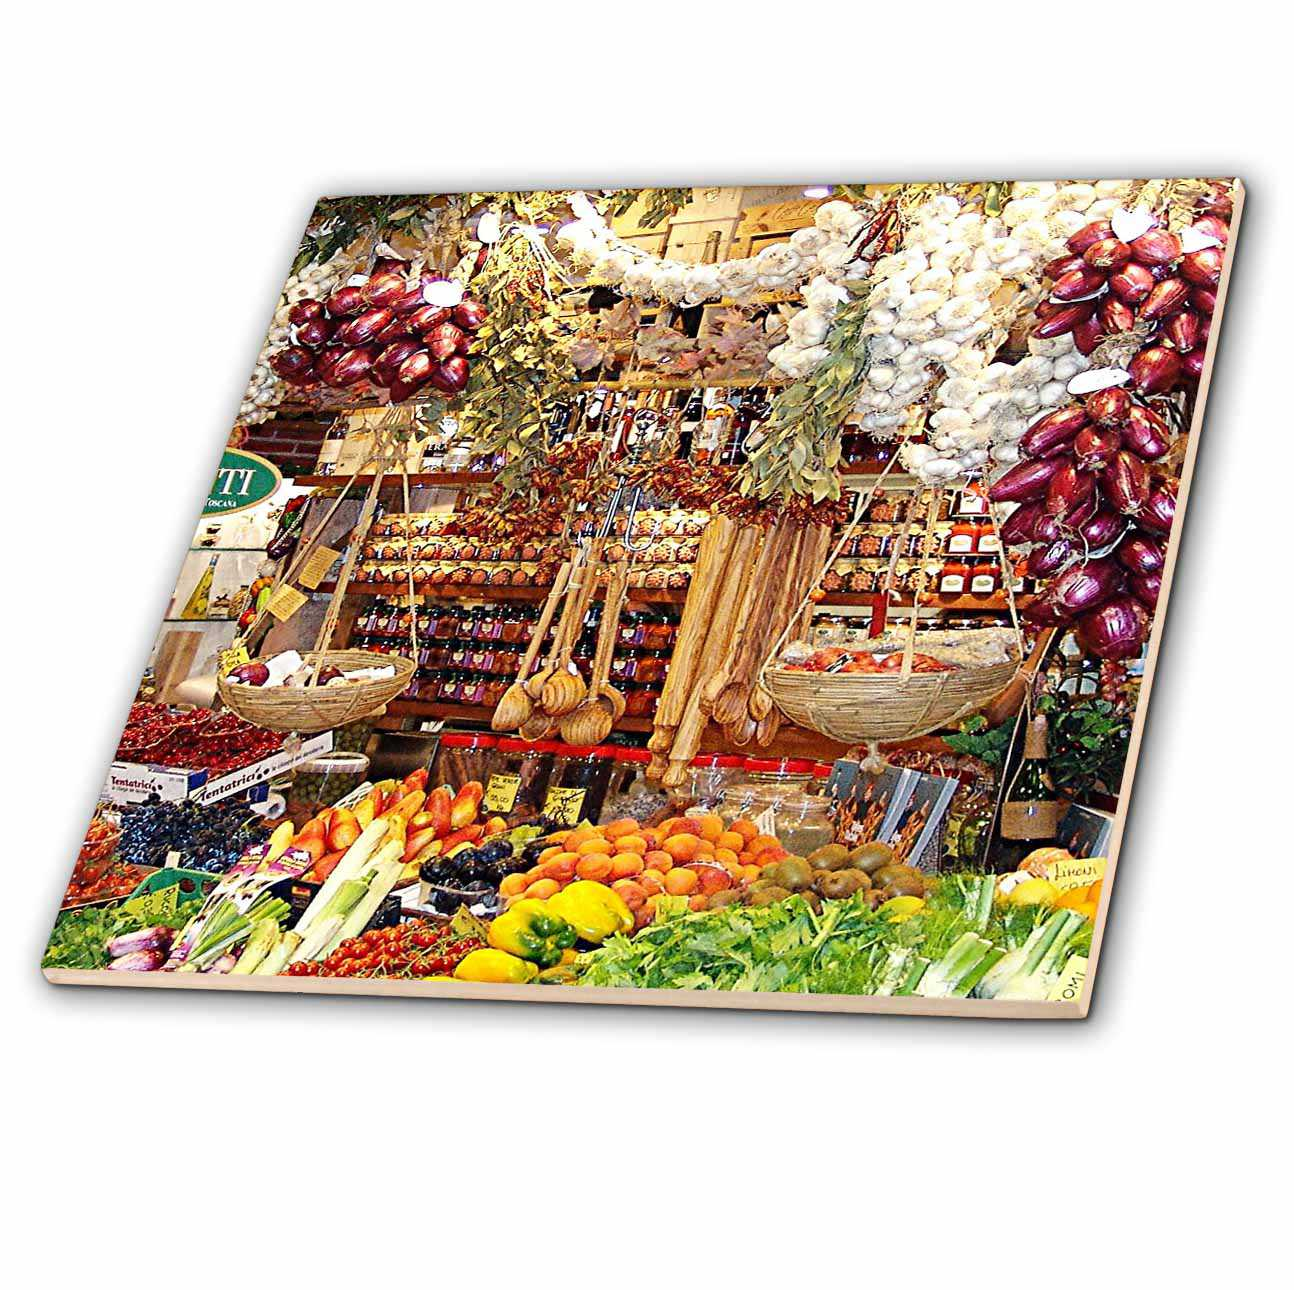 3dRose French. Italian. Food. Cheese. Veggies. Berries. - Ceramic Tile, 4-inch